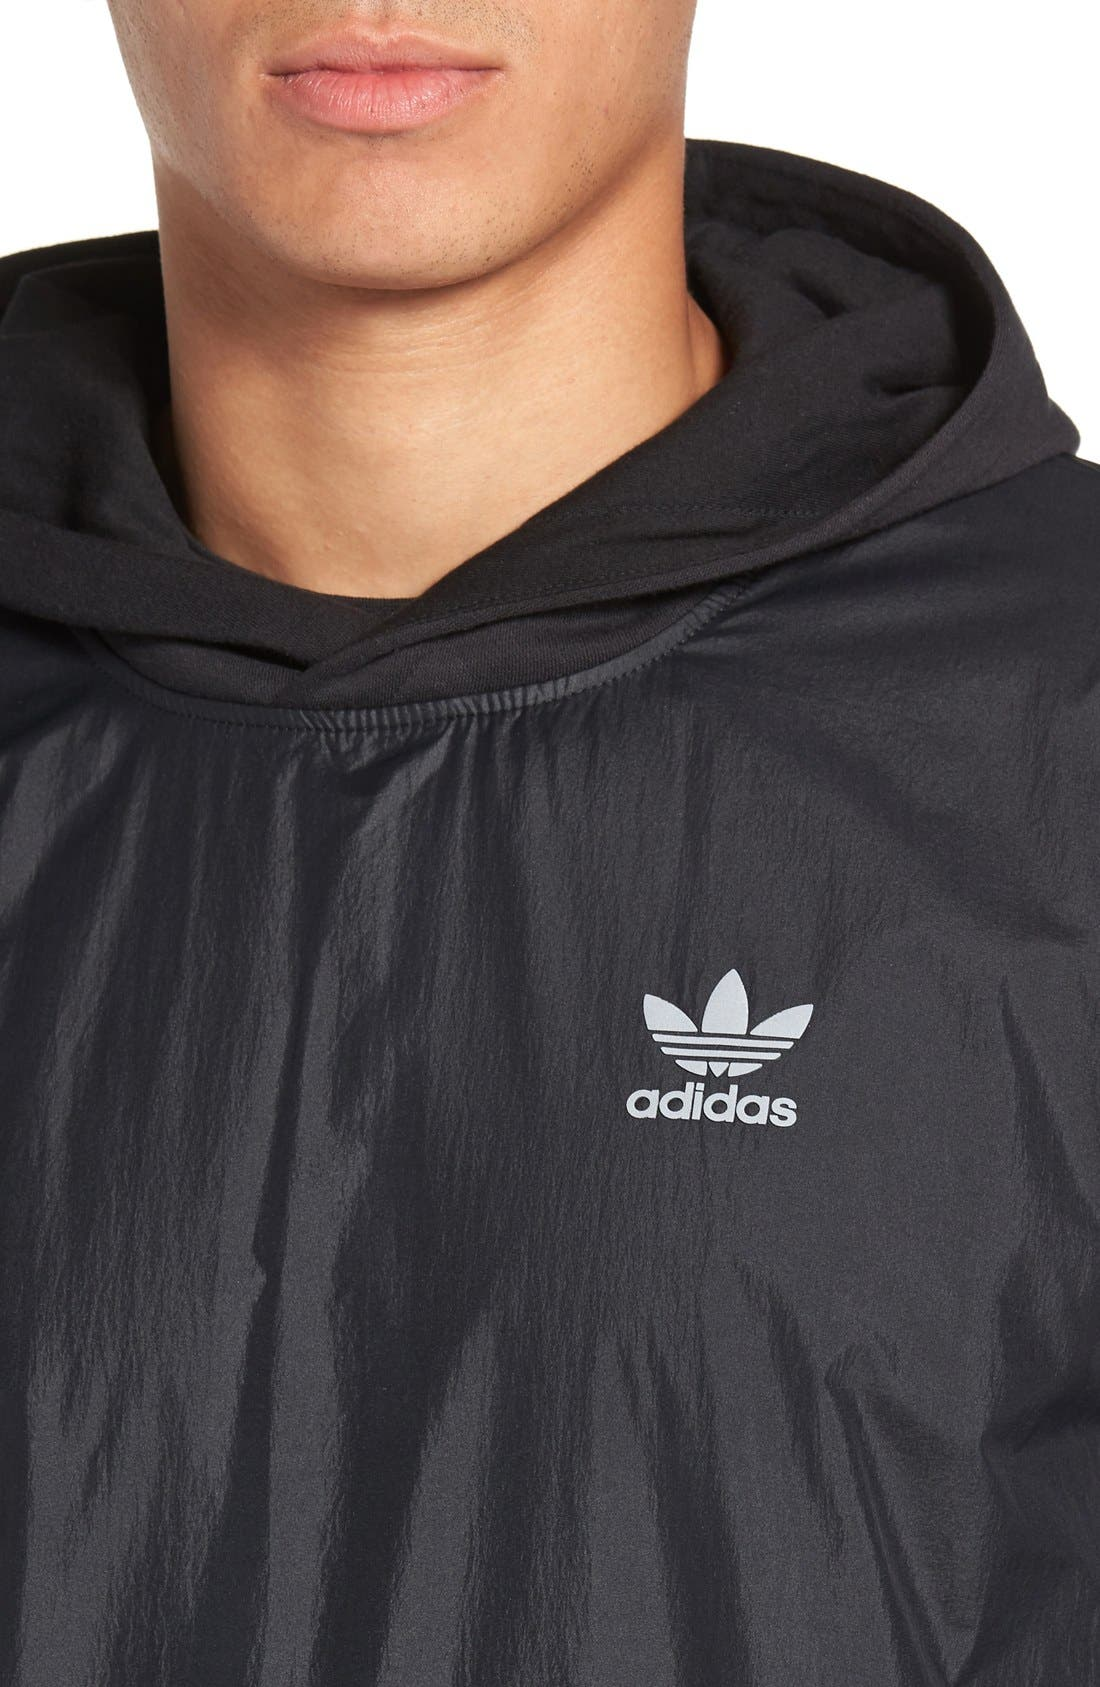 ADIDAS ORIGINALS,                             Sport Luxe Mix Hoodie,                             Alternate thumbnail 5, color,                             001